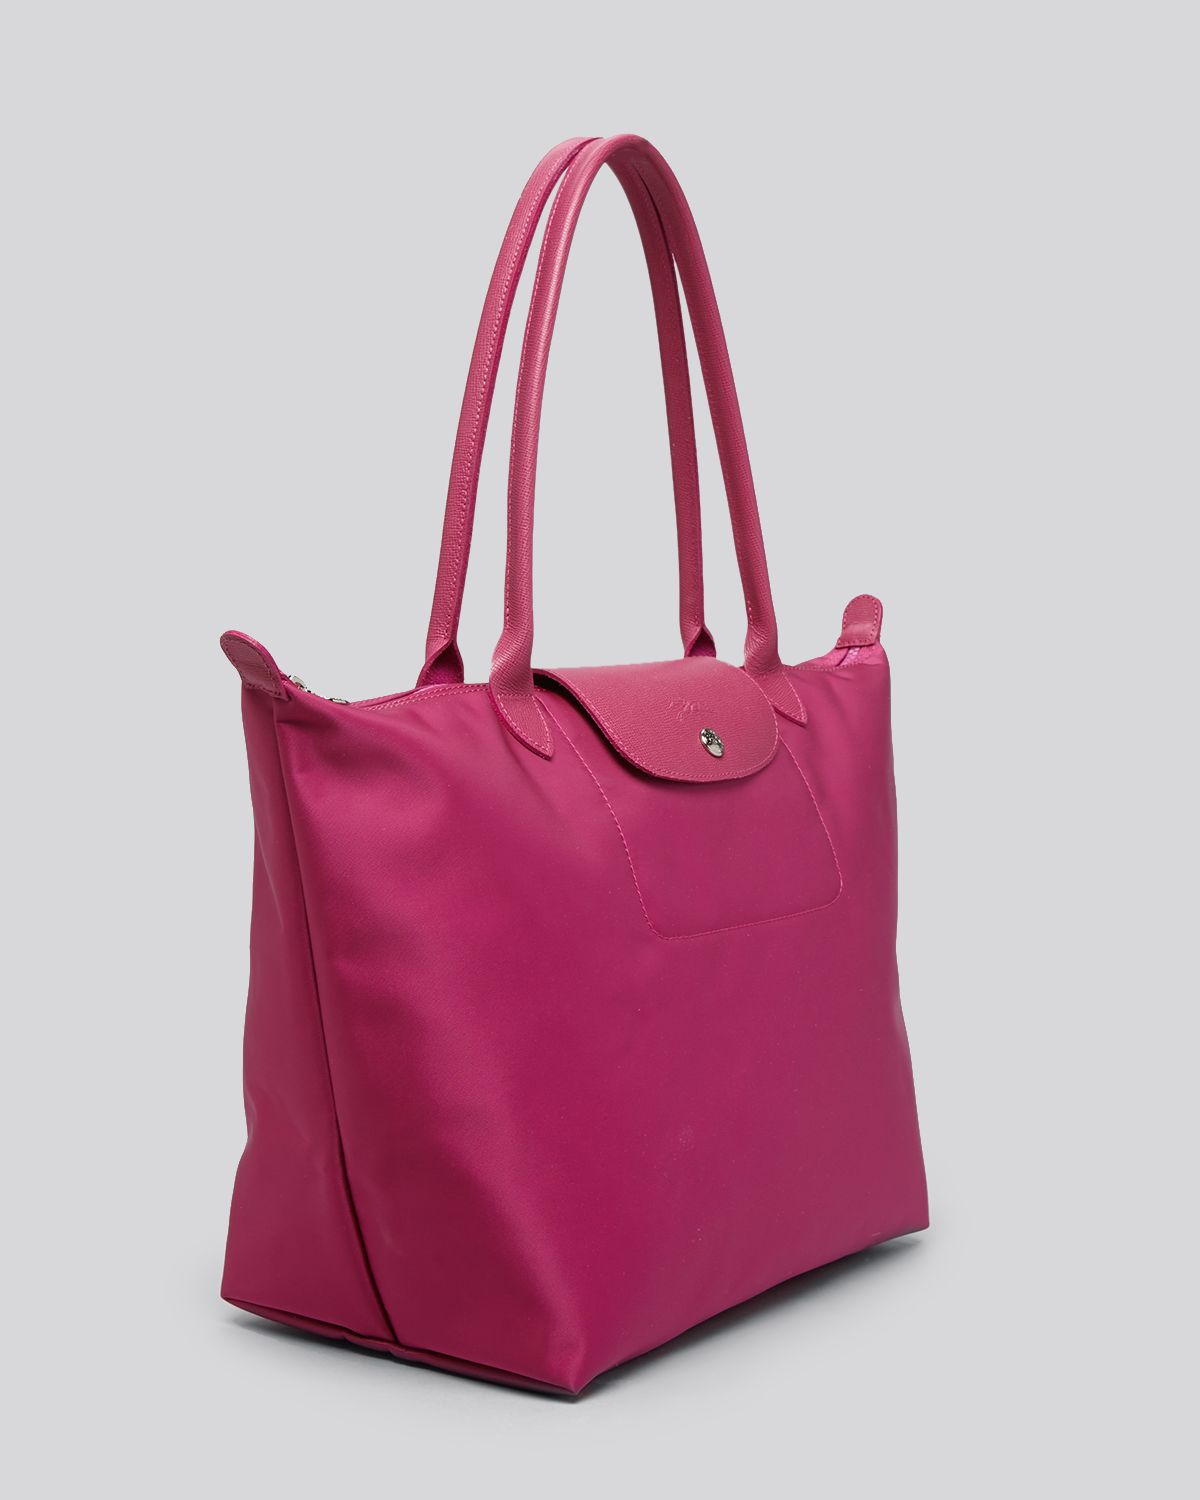 Longchamp Tote Limited Edition Le Pliage Neo Large In